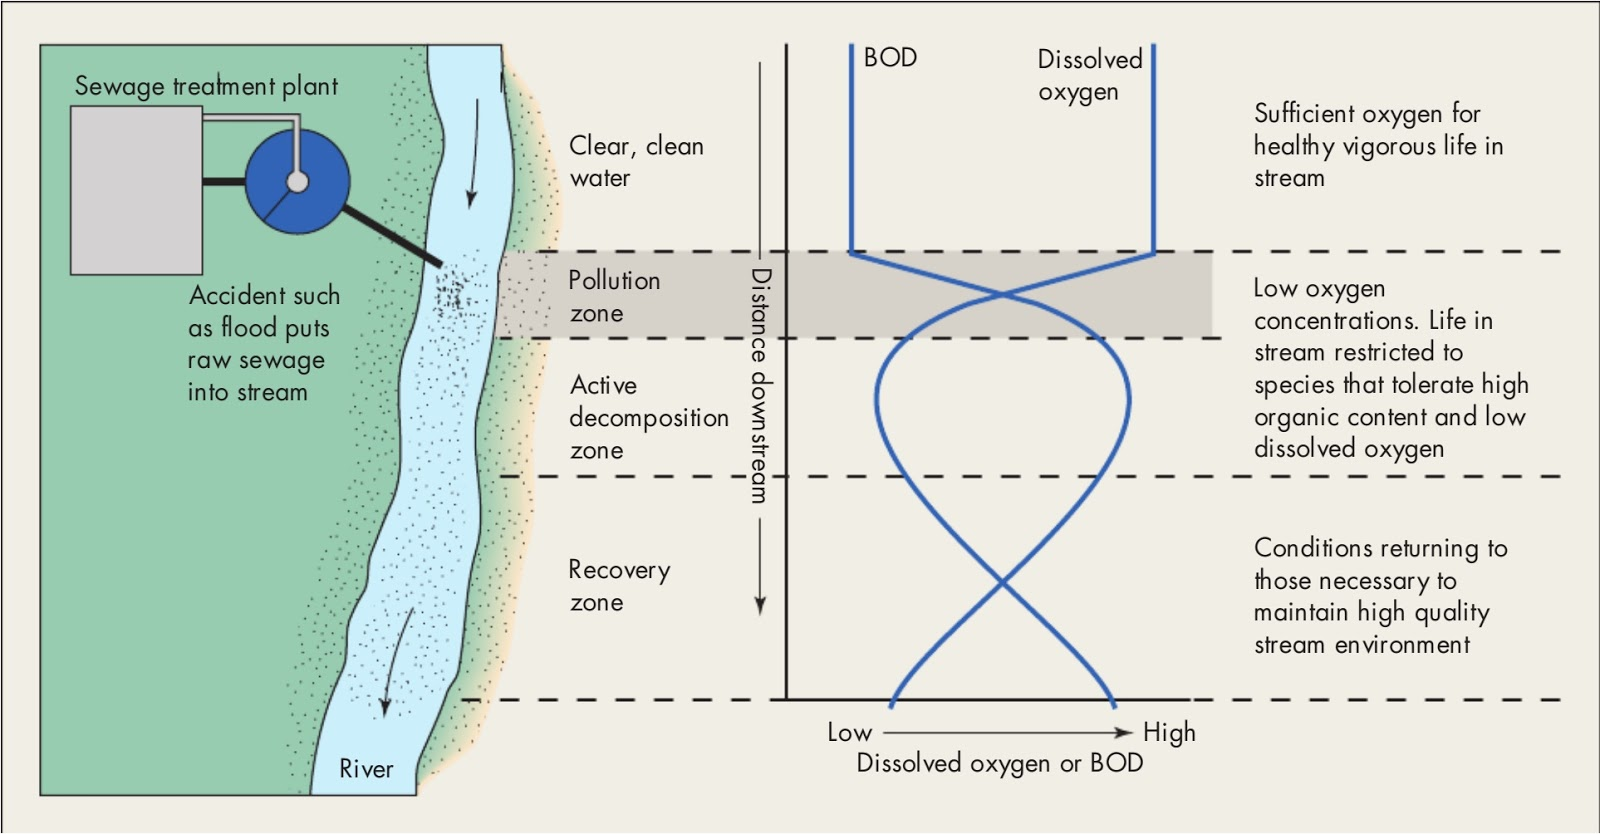 relationship between temerature and dissolved oxygen levels